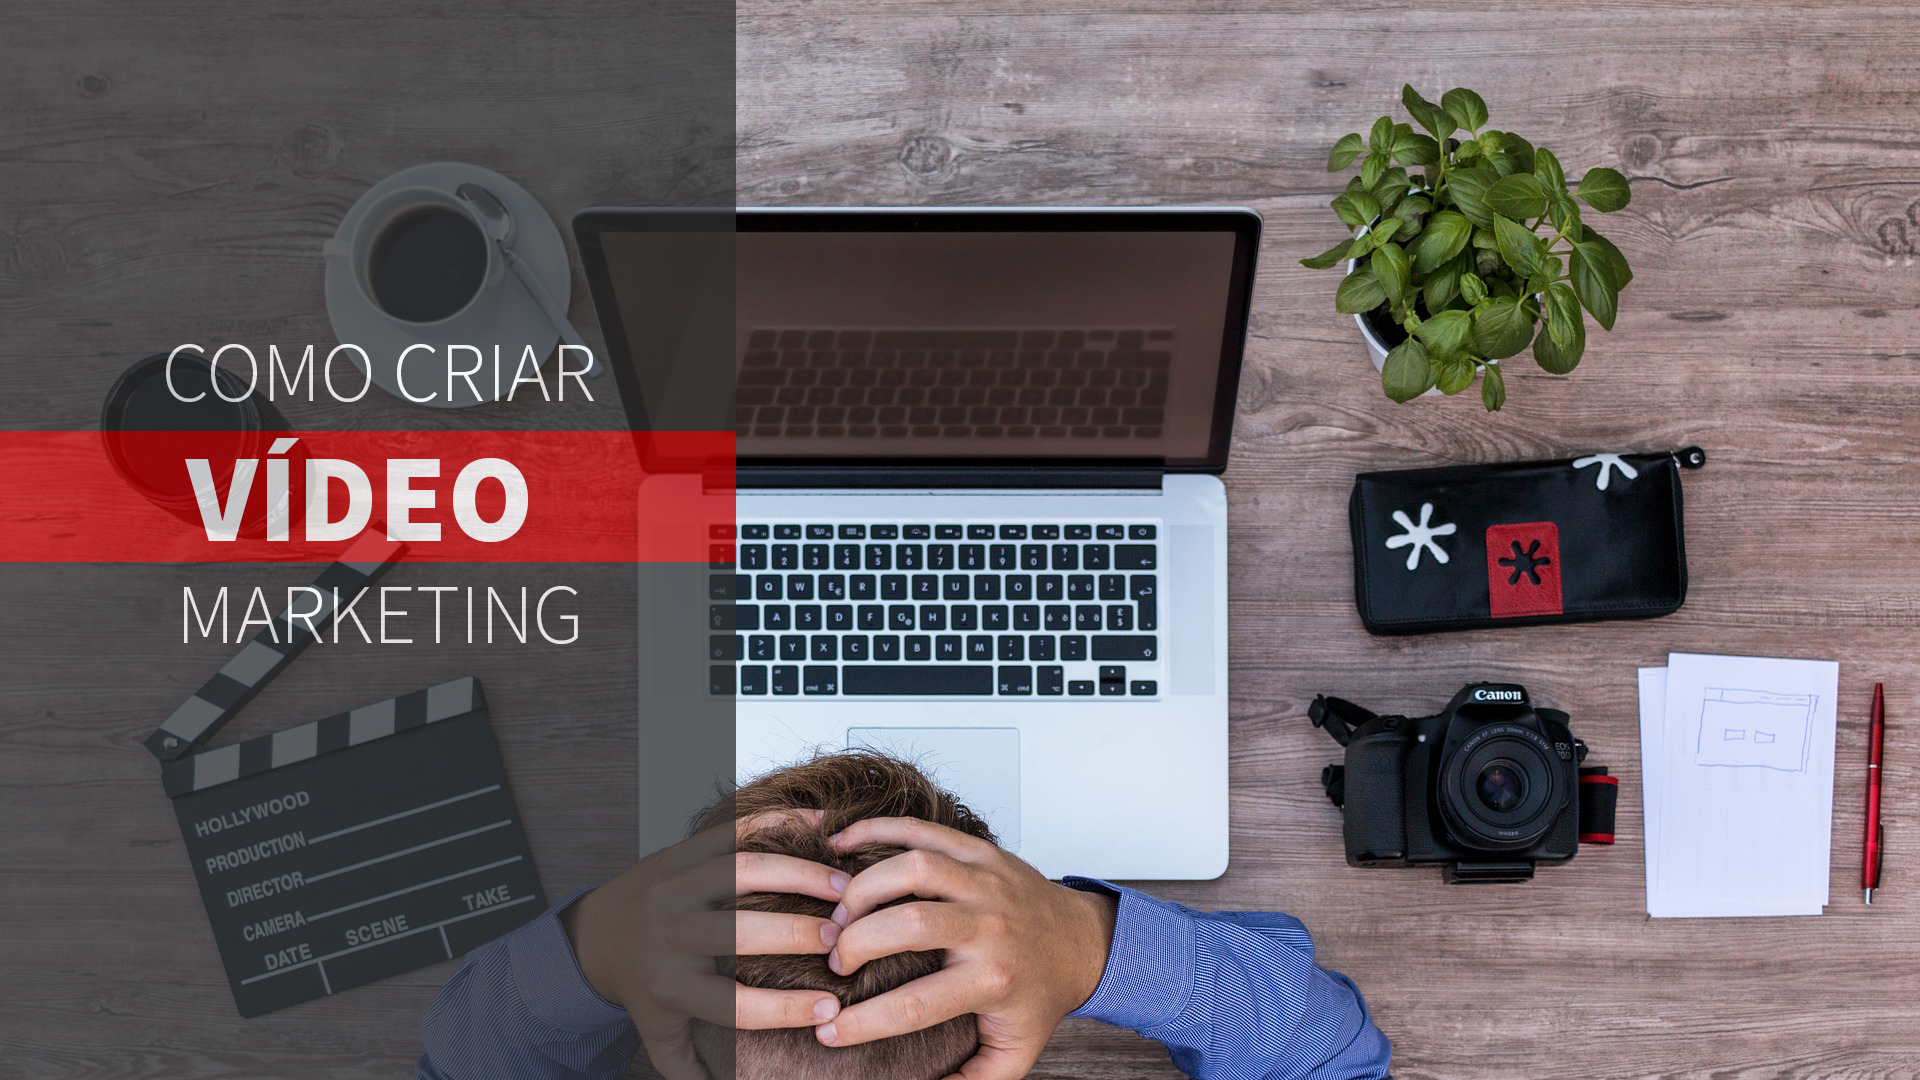 Como criar Vídeo Marketing